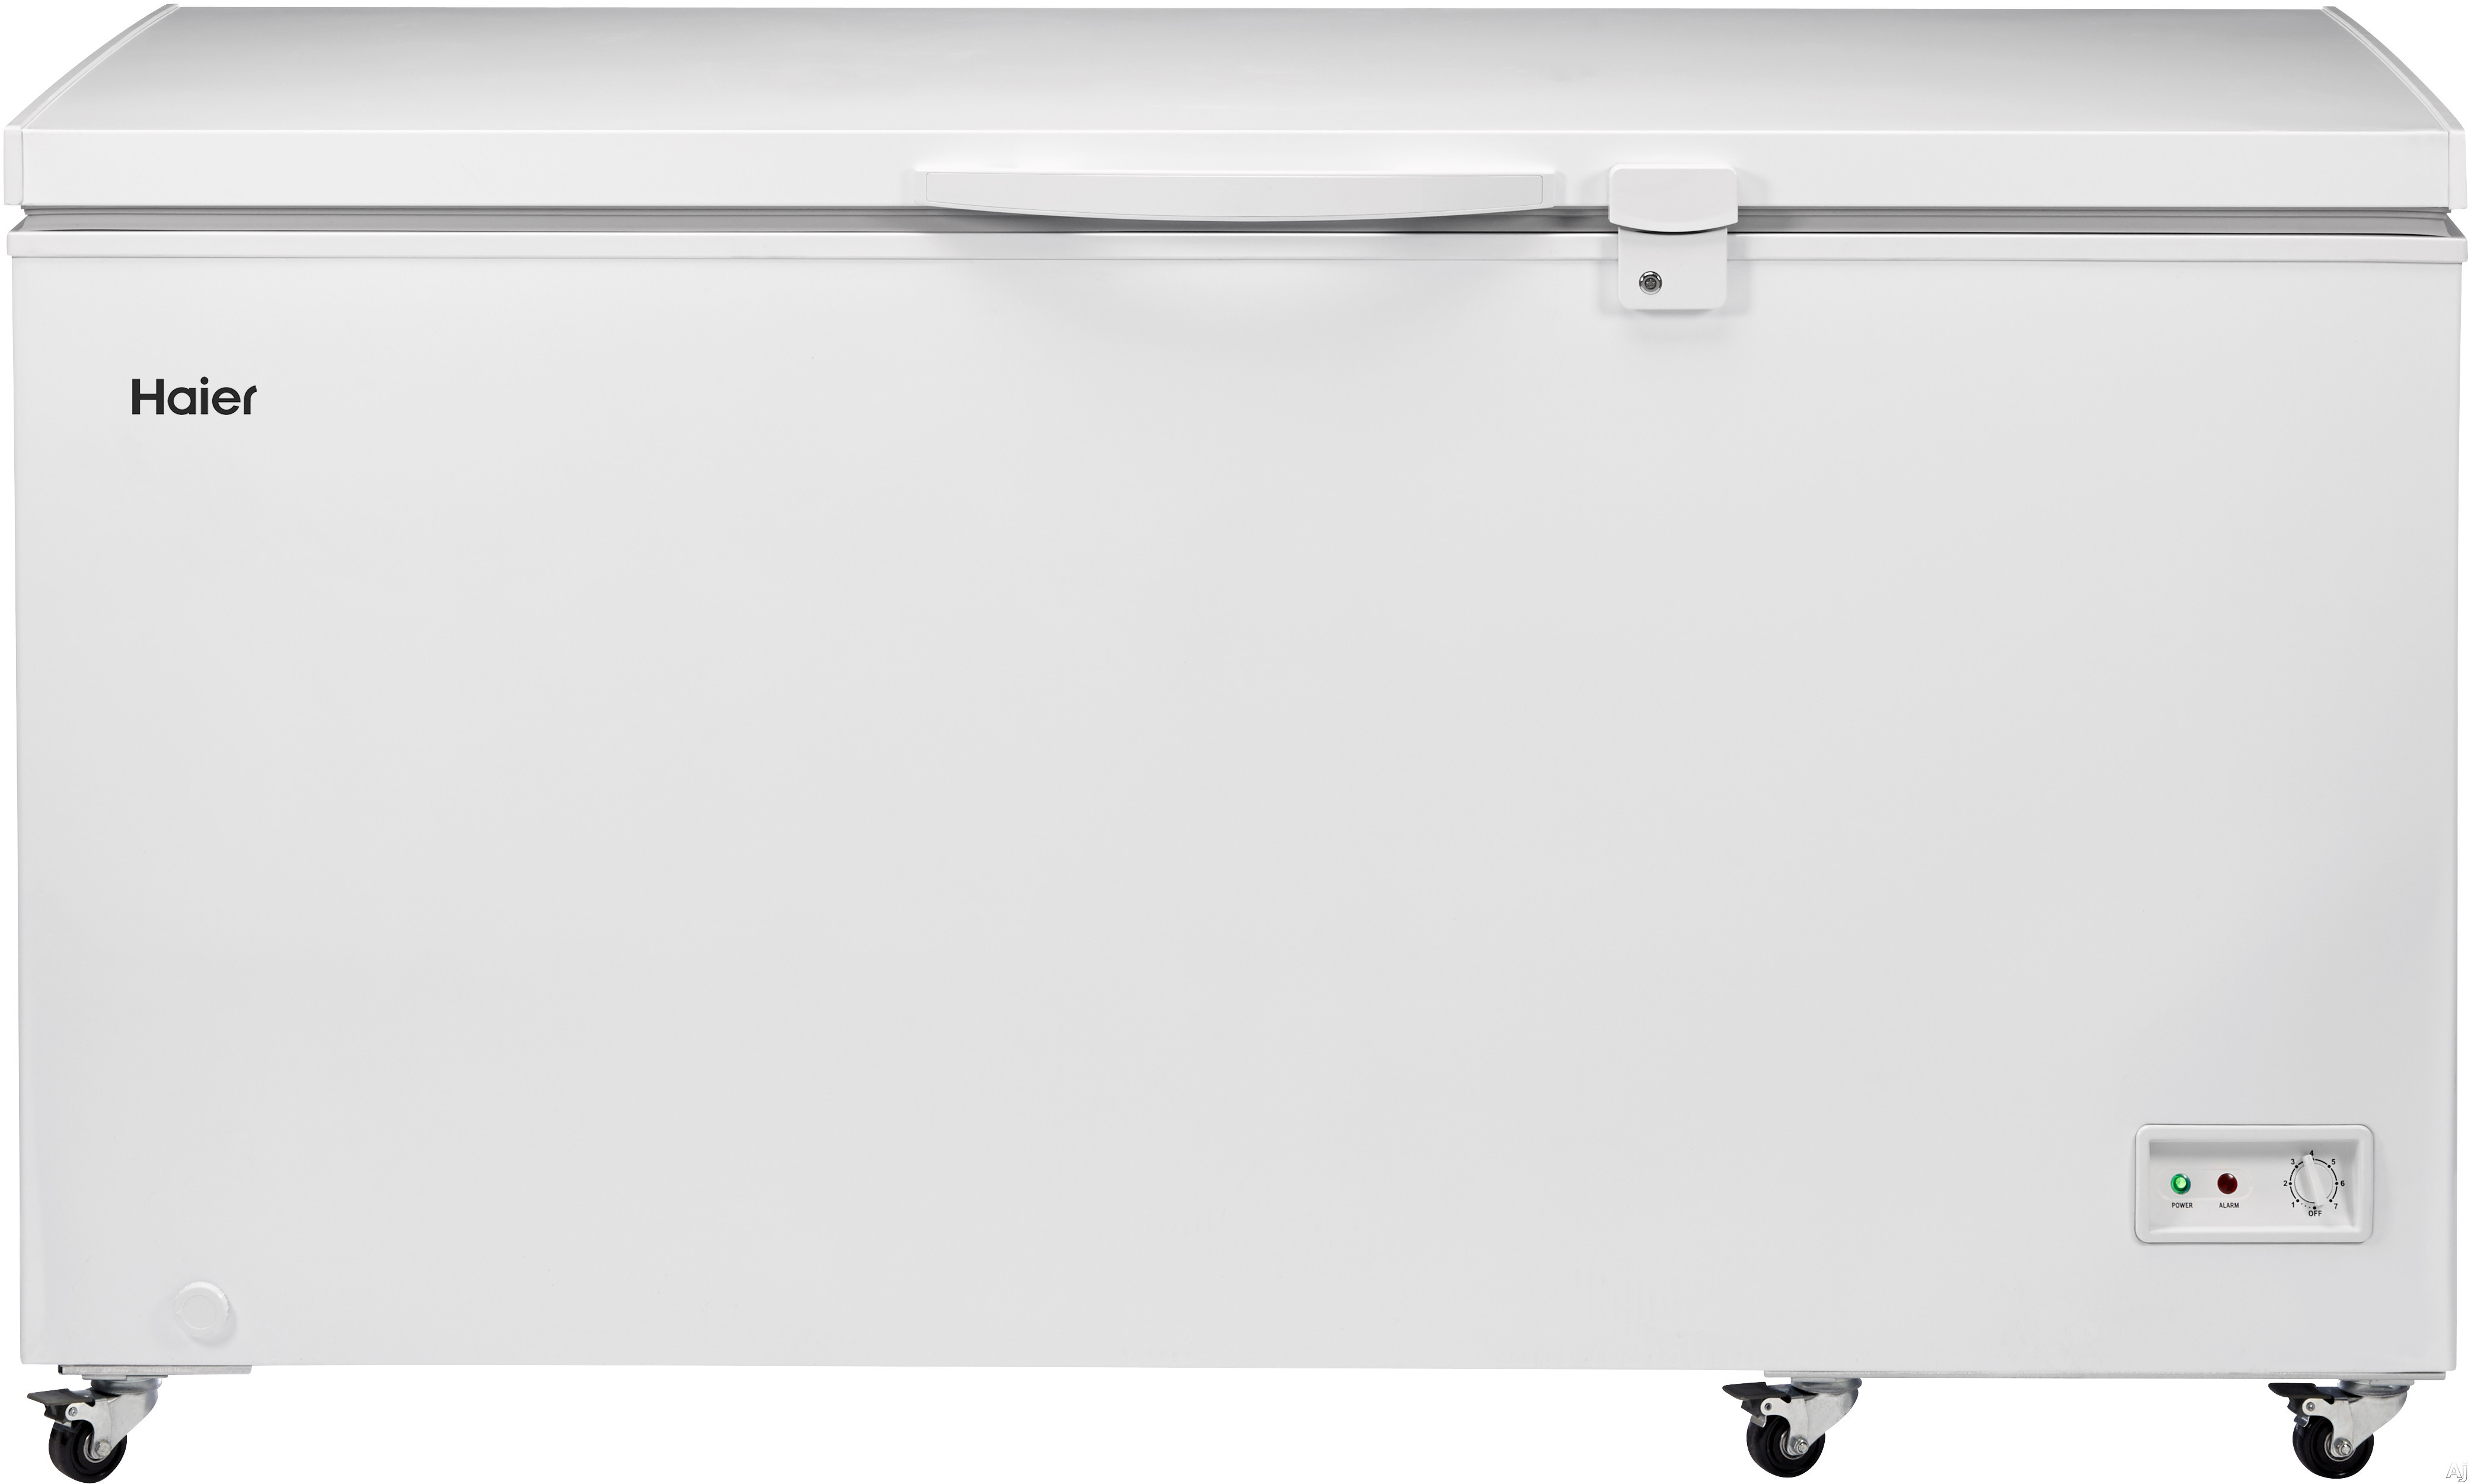 Haier HFC1504ACW 60 1/2 Inch Chest Freezer with 14.5 Cu. Ft. Capacity, 2 Removable Baskets, Casters, Interior LED Lighting, Security Lock, High Temperature Indicator Light, Power On Indicator Light, Manual Defrost with Easy Access Defrost Drain and Space-Saving Design